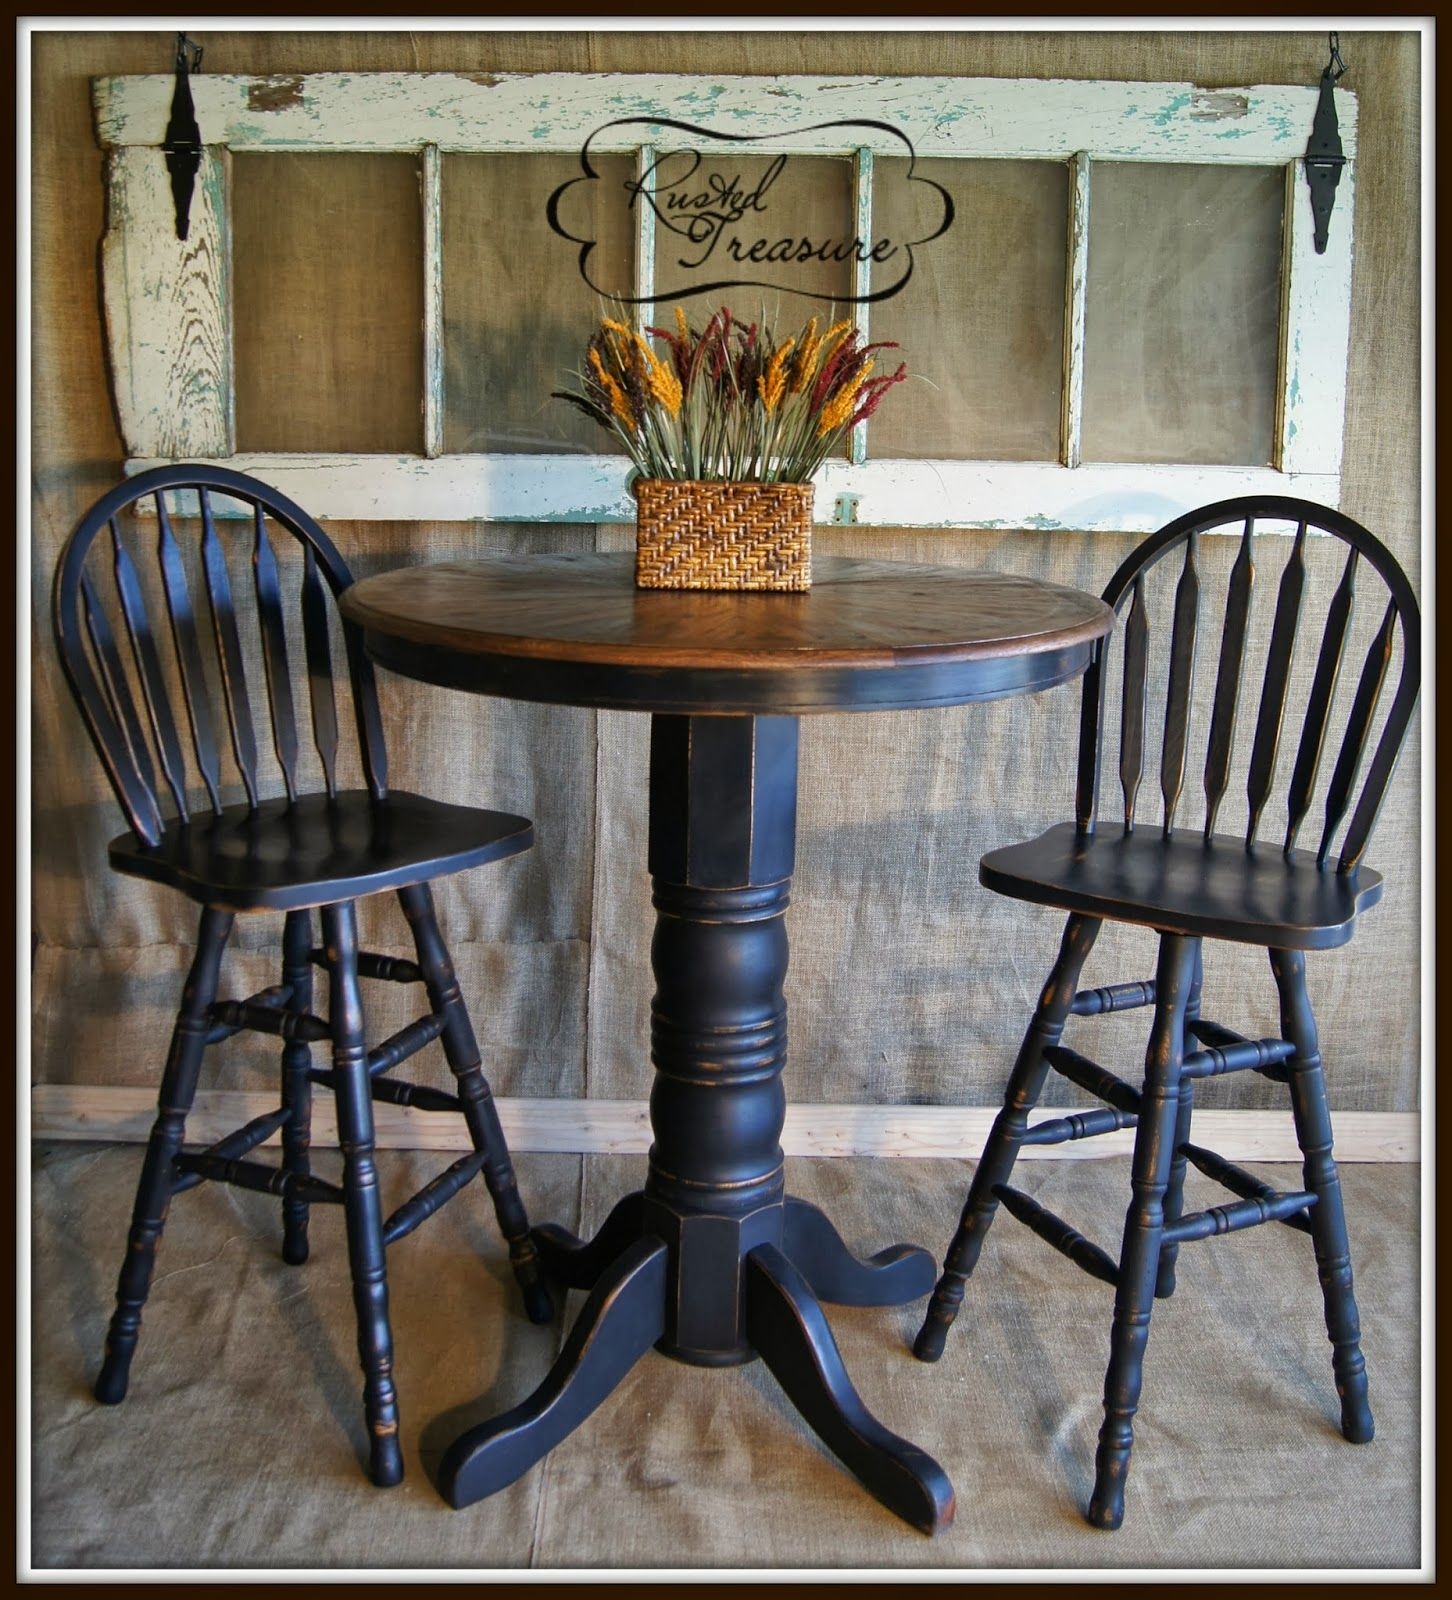 Captivating Distressed Bar Top Table And Chairs (Before And After)